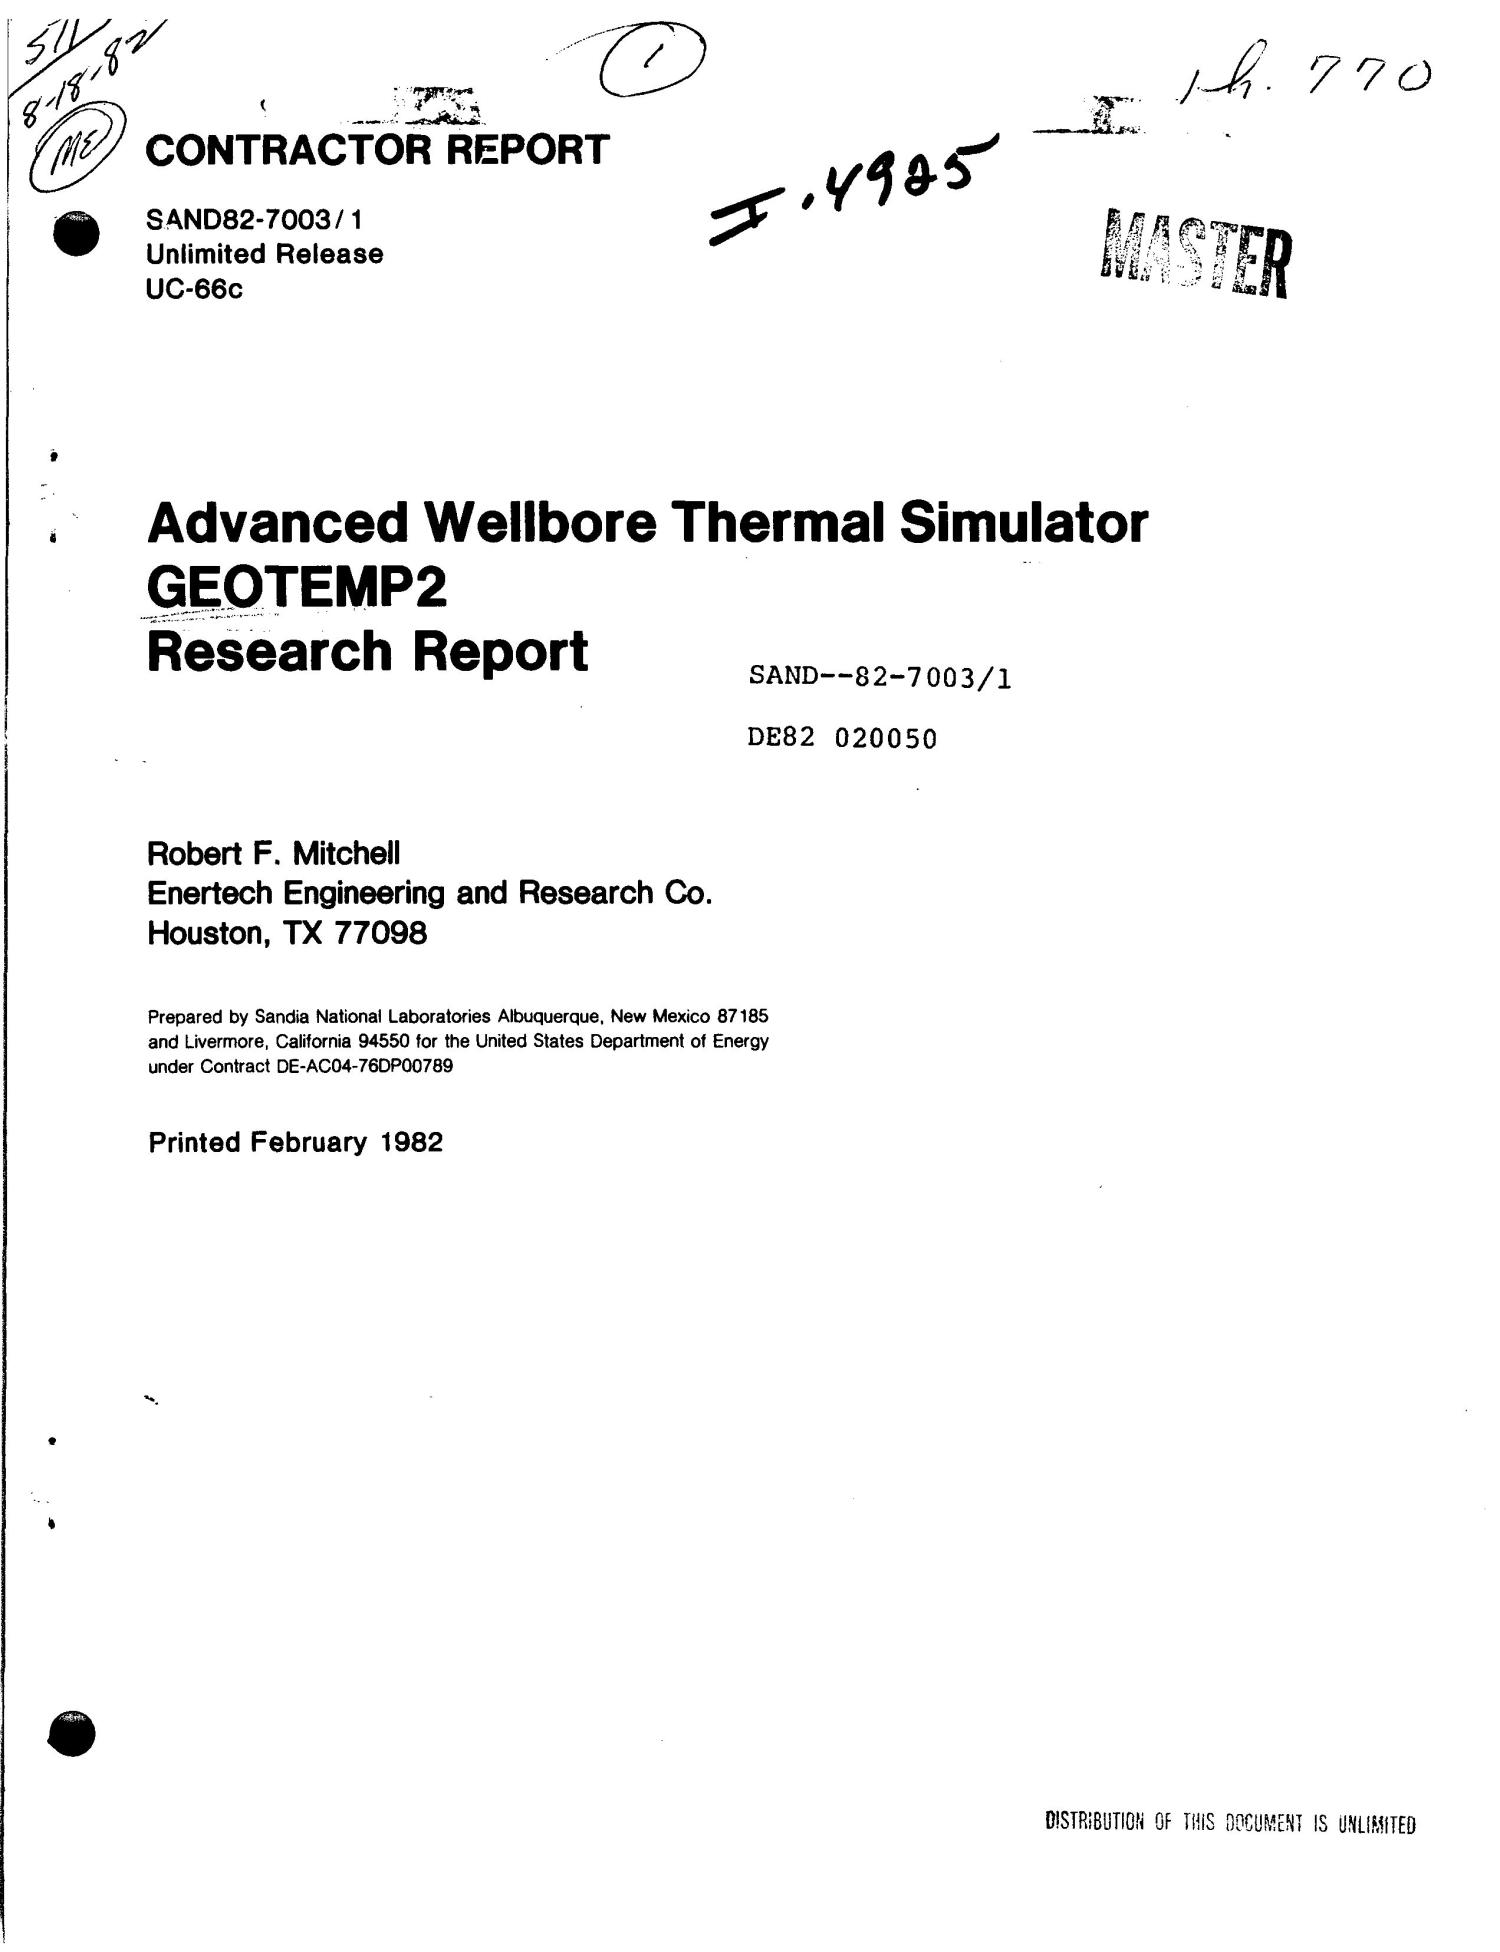 Advanced wellbore thermal simulator GEOTEMP2 research report                                                                                                      [Sequence #]: 1 of 92